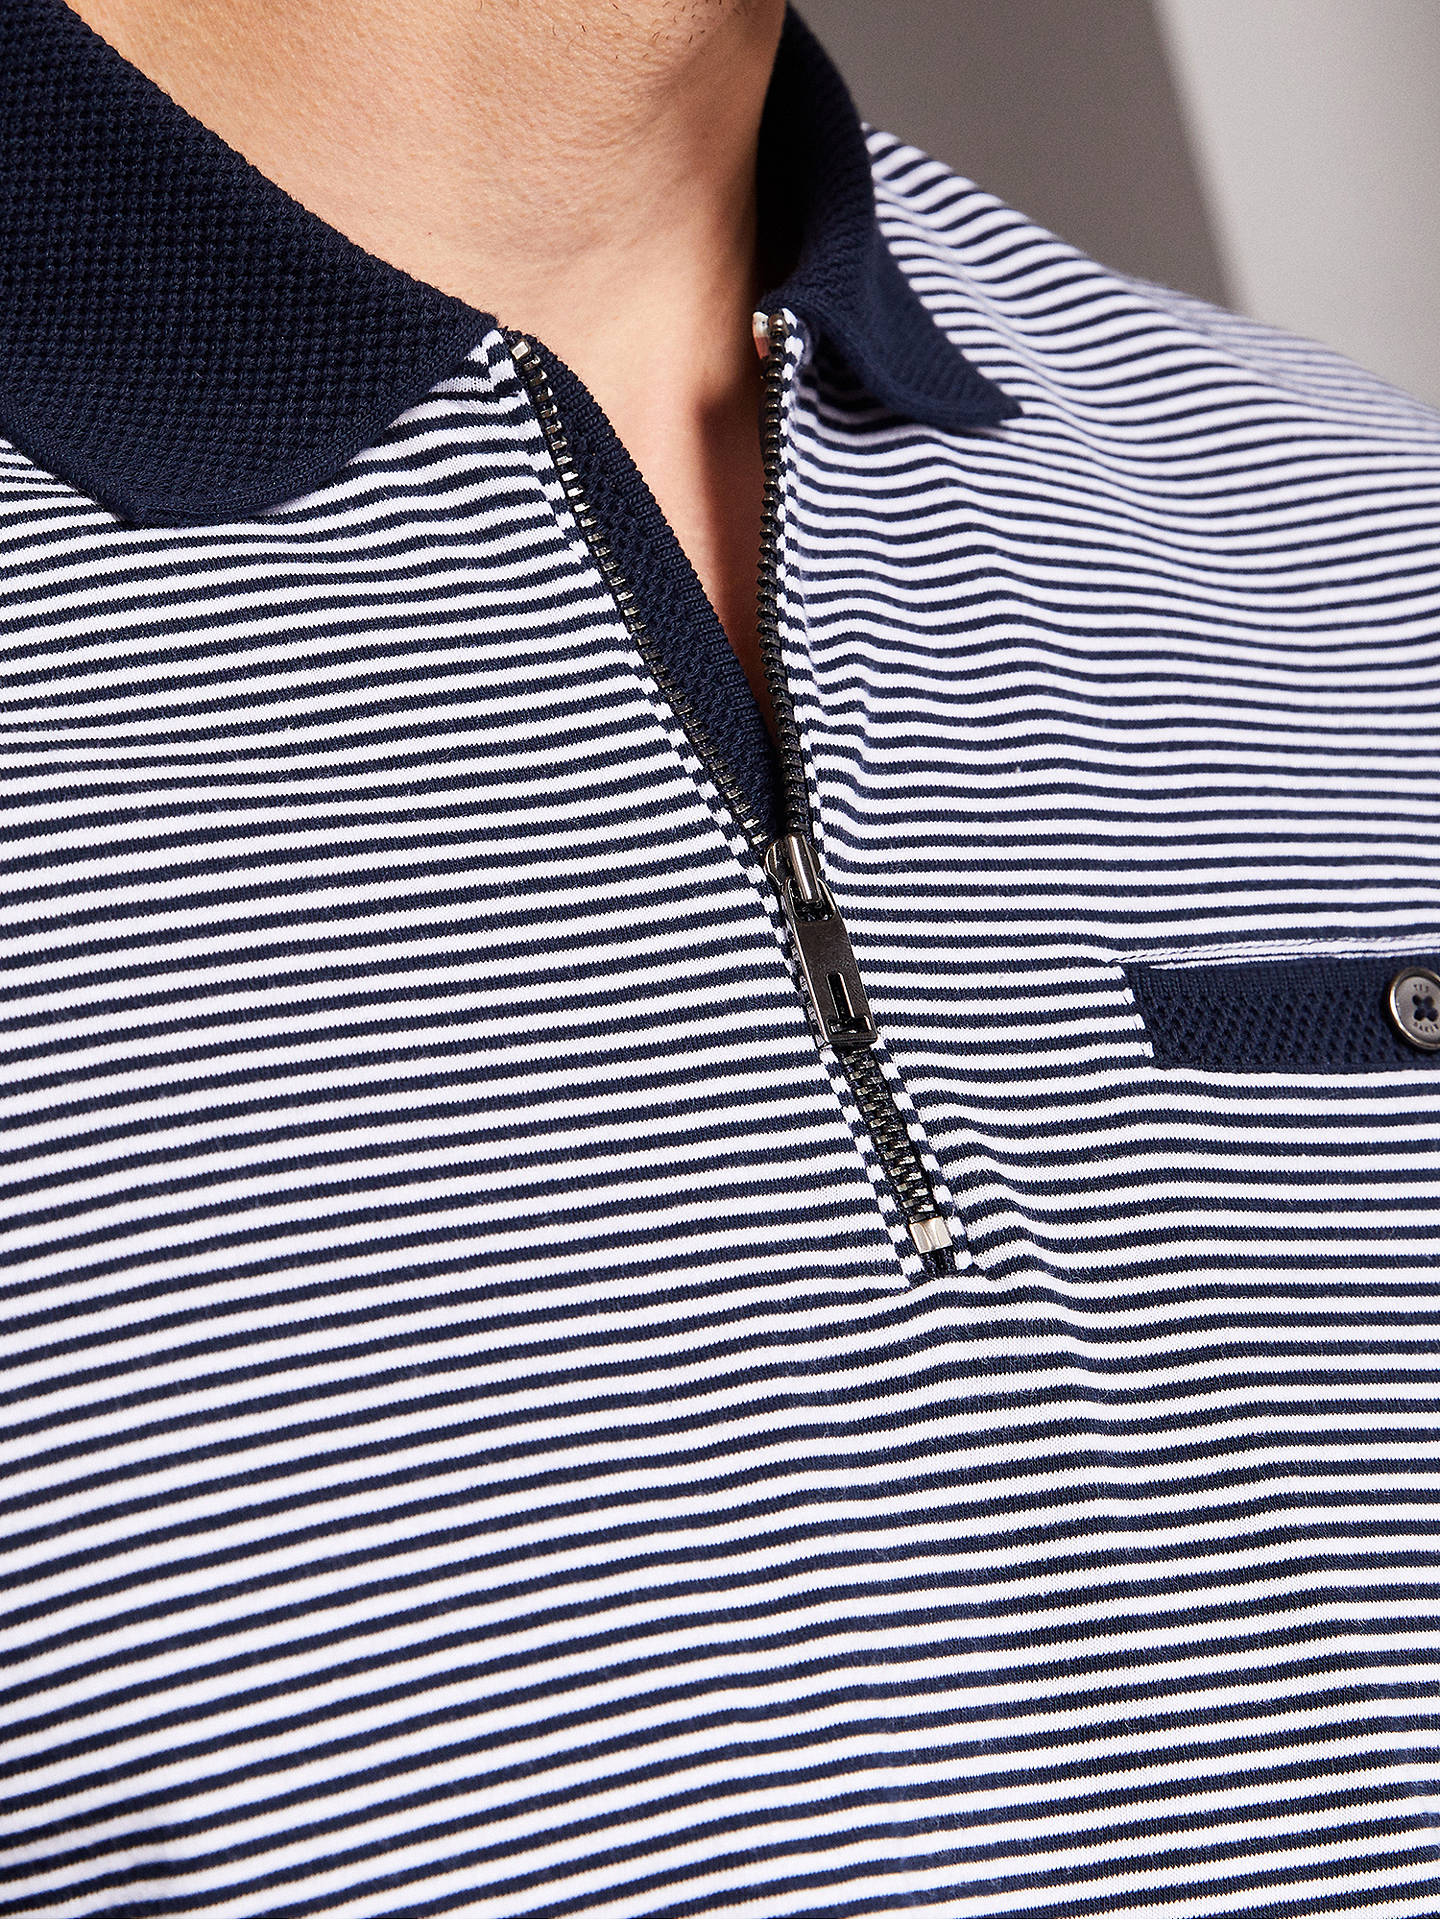 fab7fe3ae7 ... BuyTed Baker Whippet Zip Striped Polo Shirt